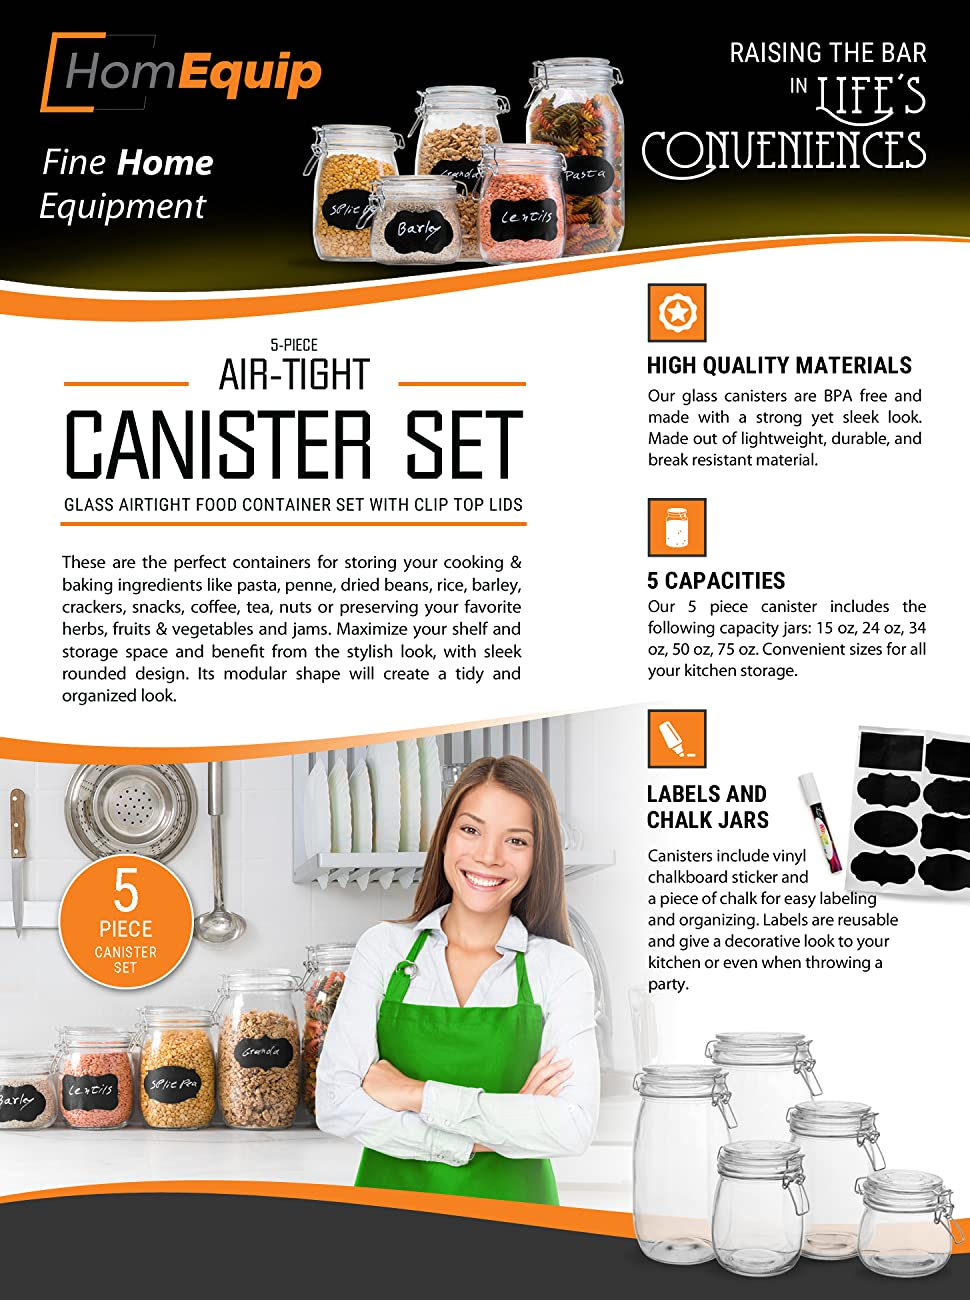 amazon com homequip 5 piece airtight canister set with clip top our 5 piece canister includes the following capacity jars 15oz 24 oz 34oz 50oz 75oz convenient sizes for all your kitchen storage